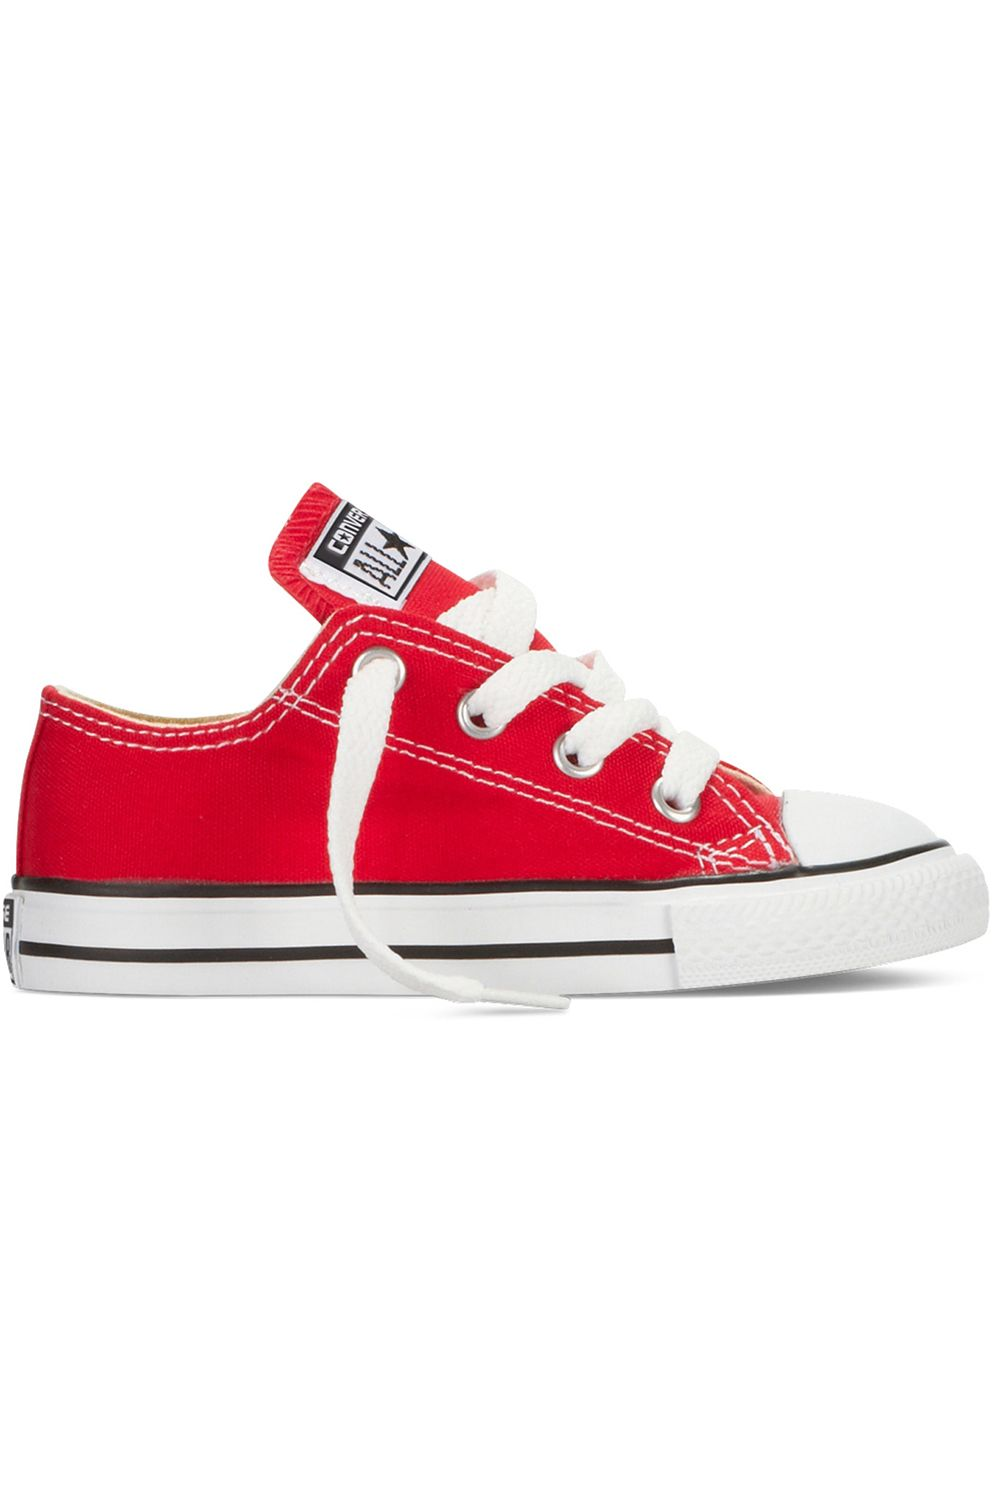 Converse Shoes CHUCK TAYLOR ALL STAR OX Red